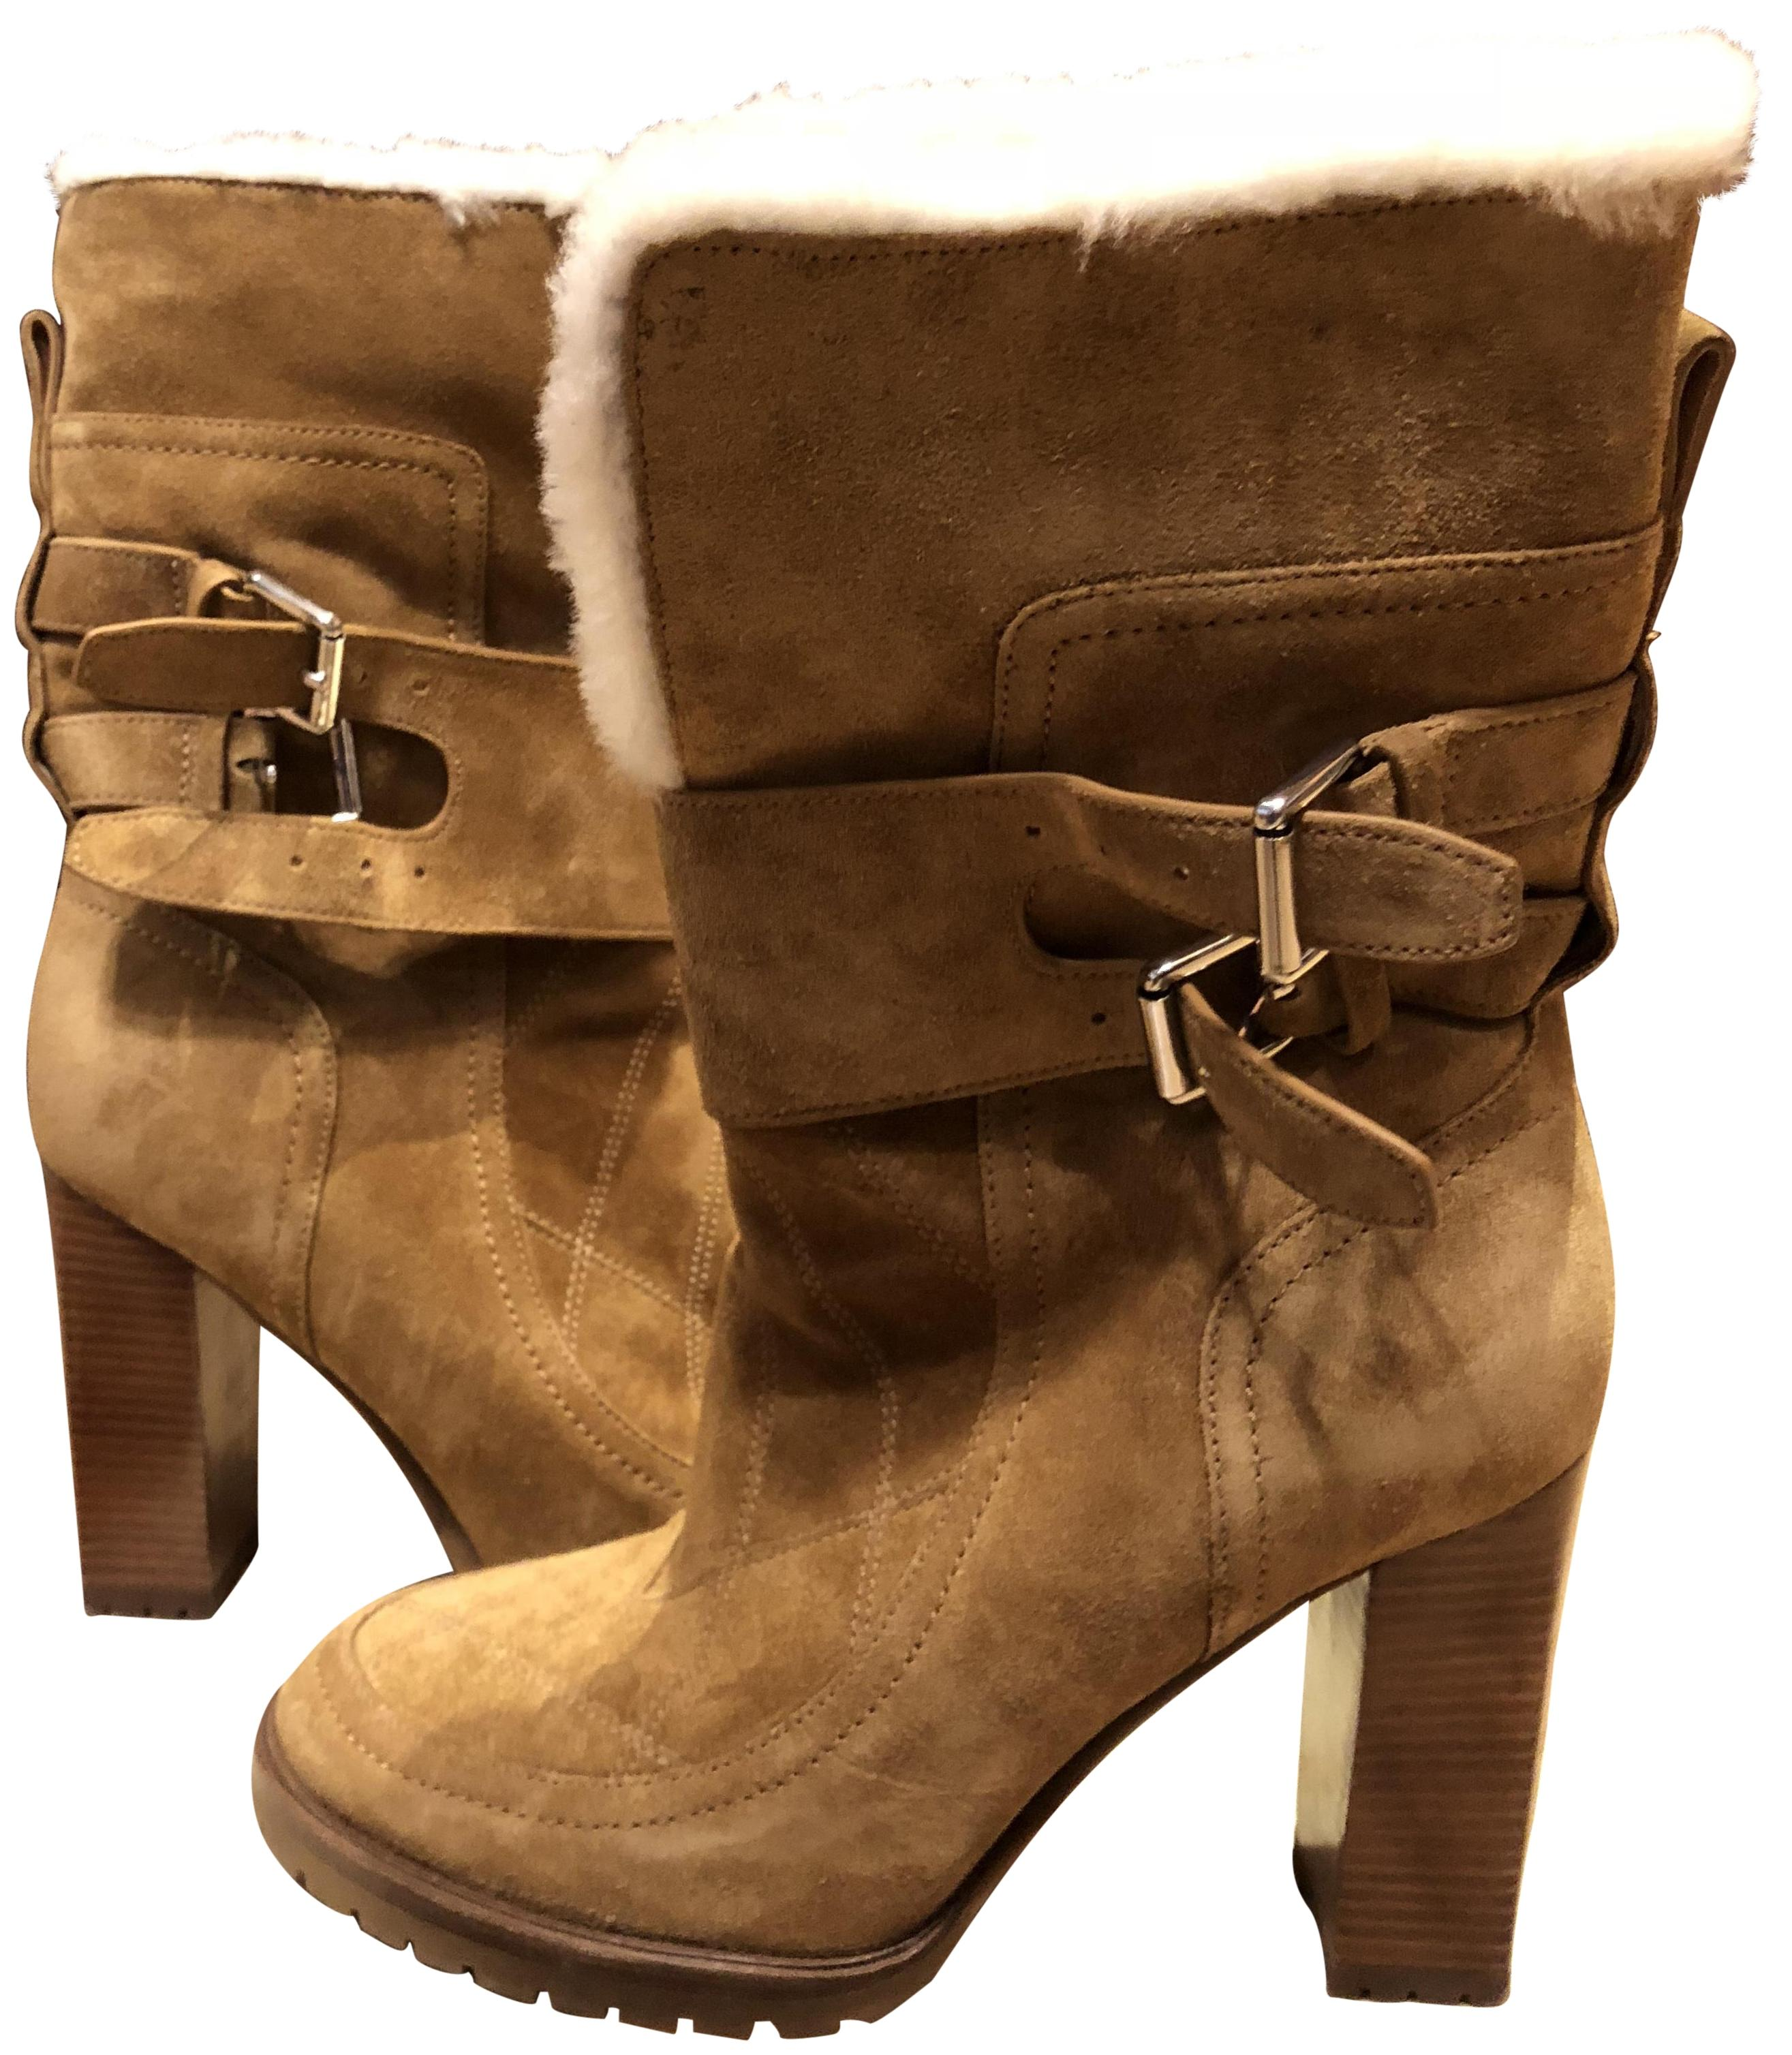 Sigerson Morrison Uggs Camel Boots ...